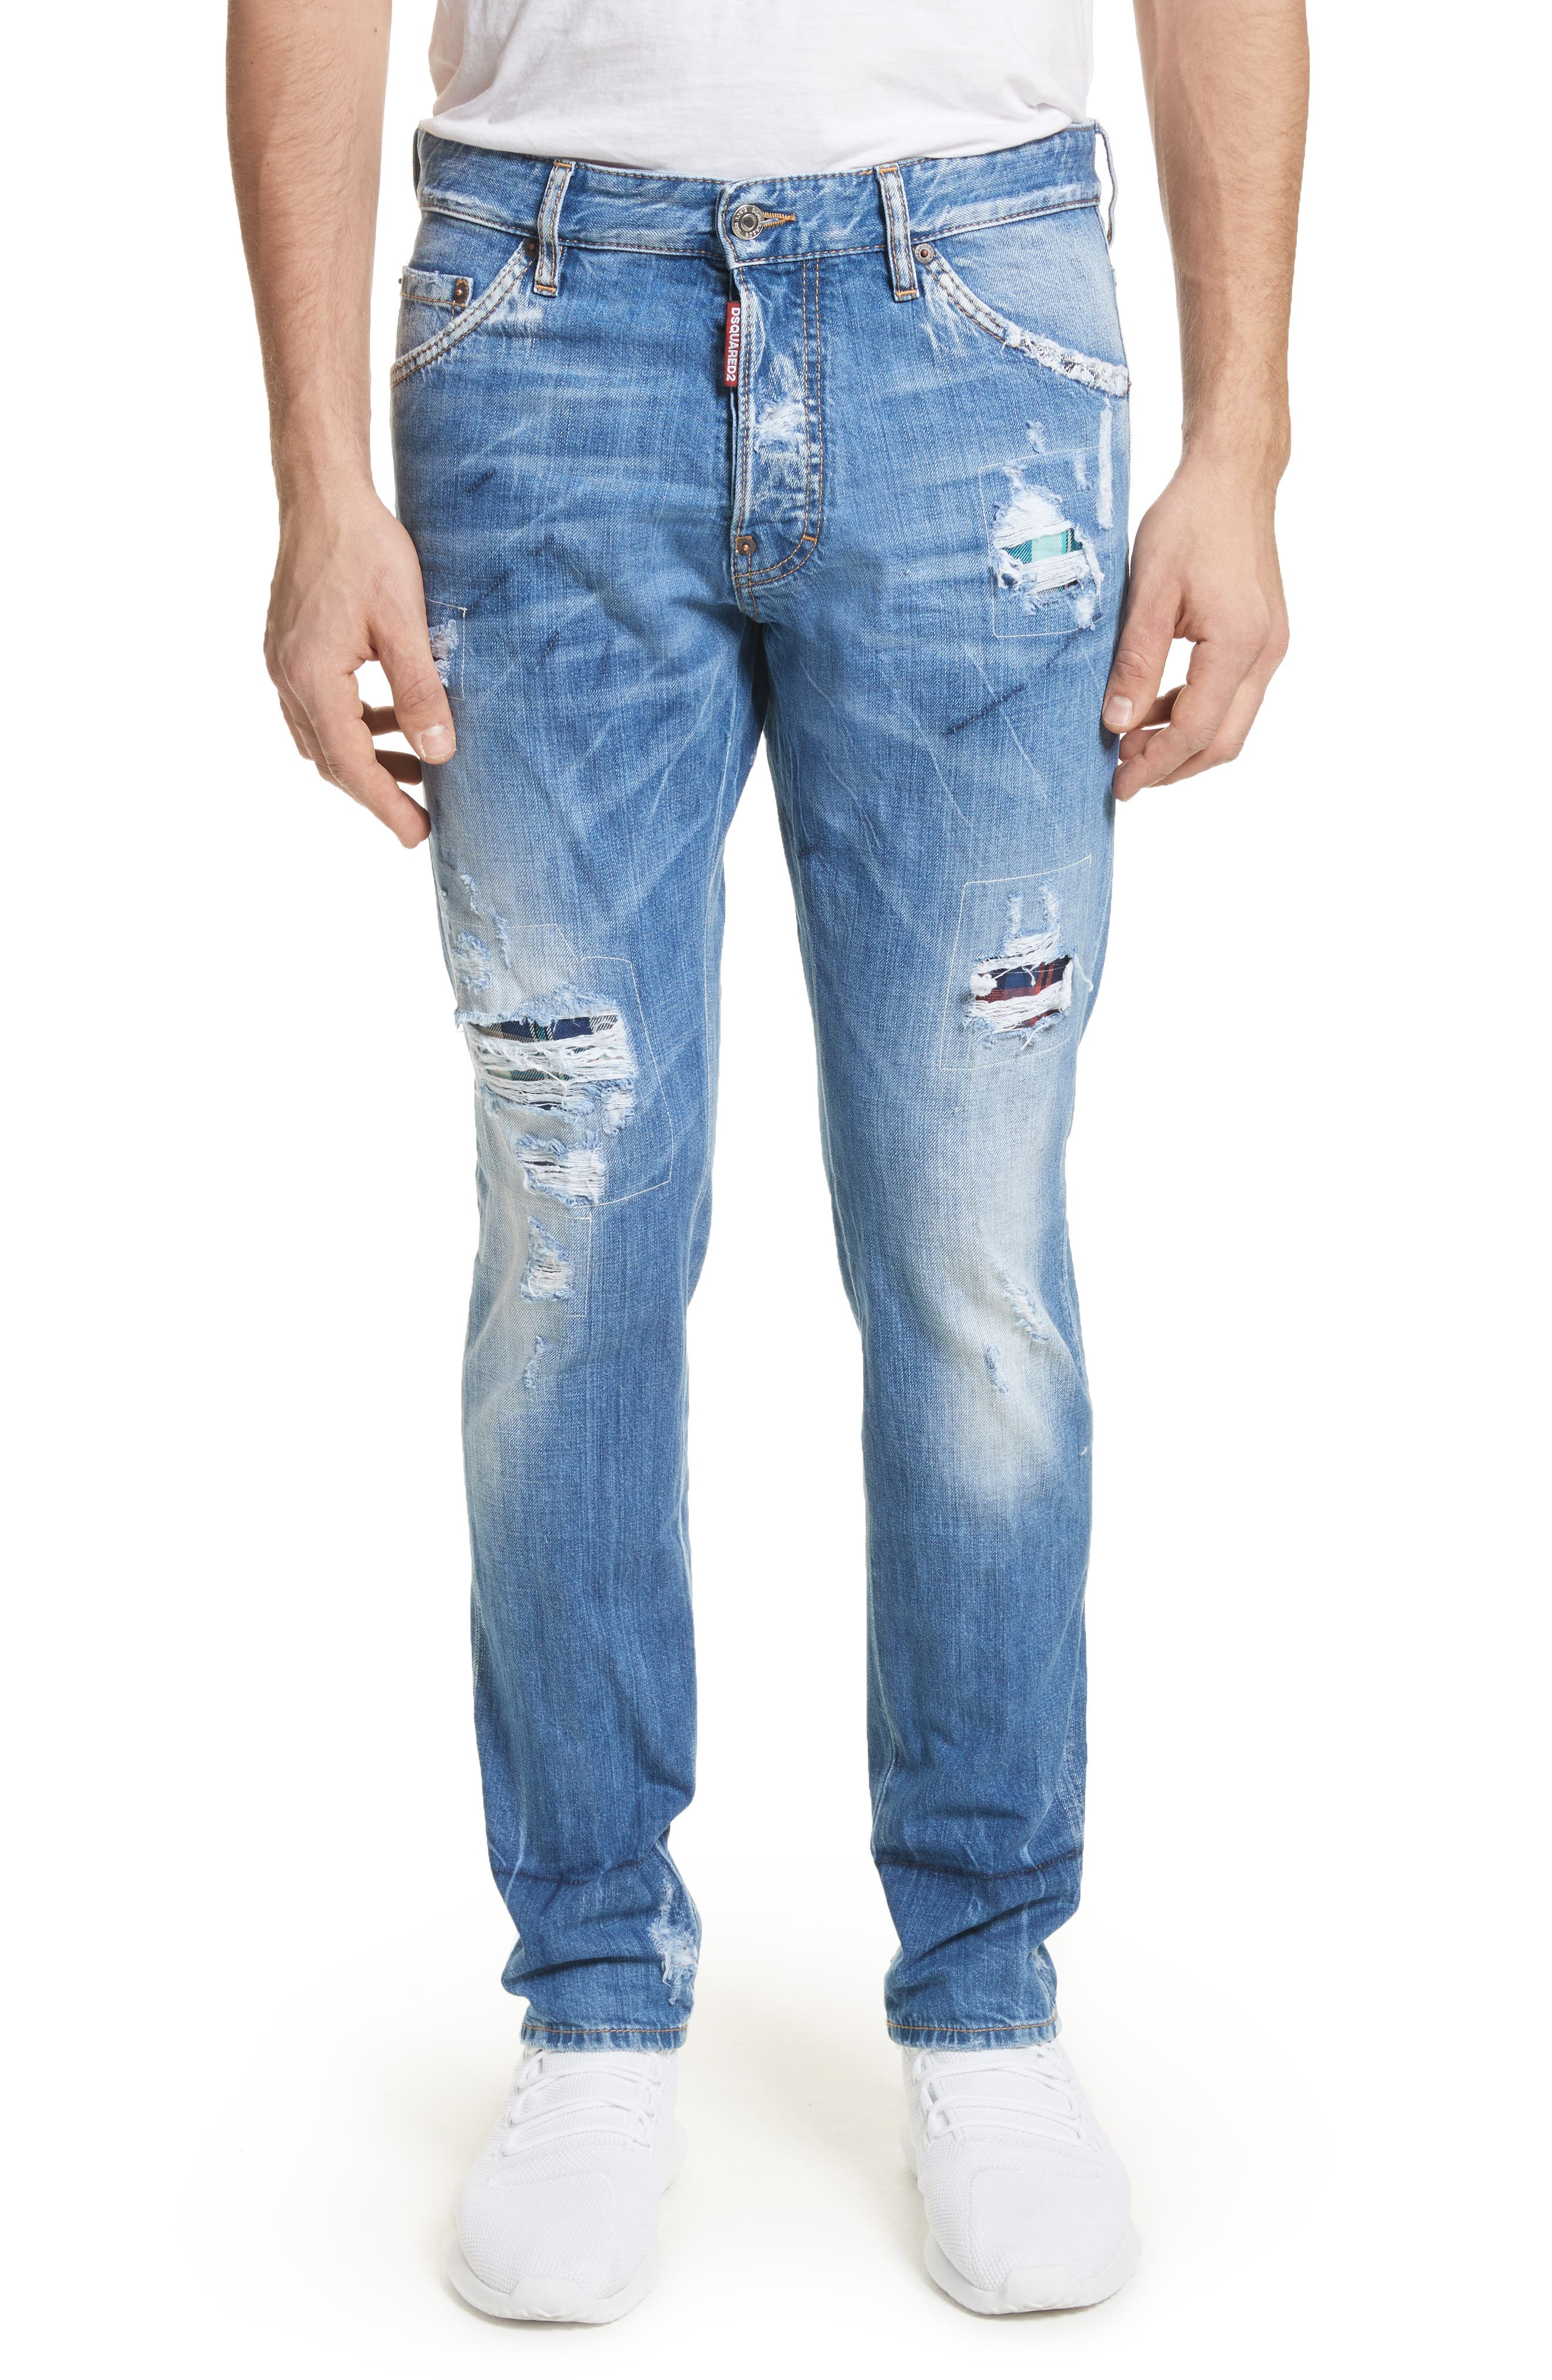 Cool Guy Skinny Fit Jeans,                             Main thumbnail 1, color,                             414